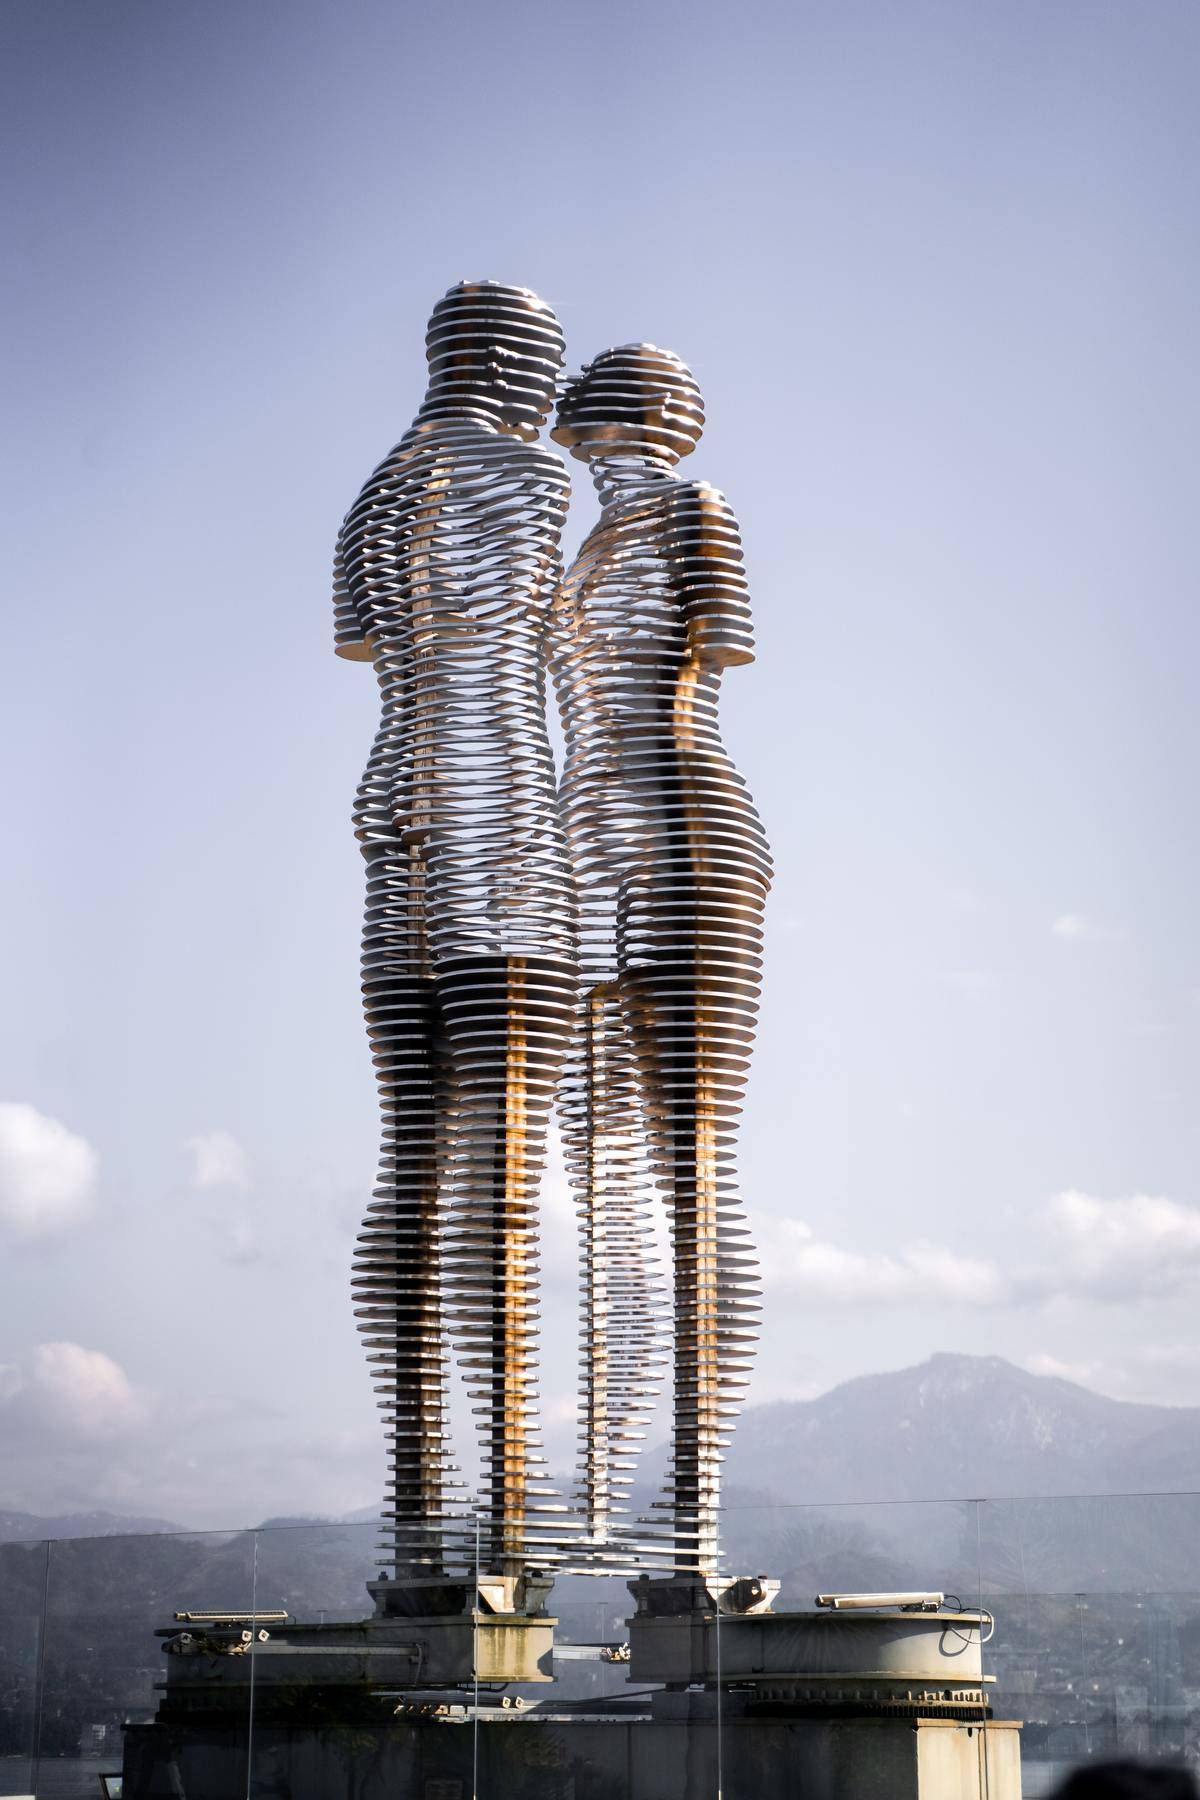 statue of man and woman facing each other